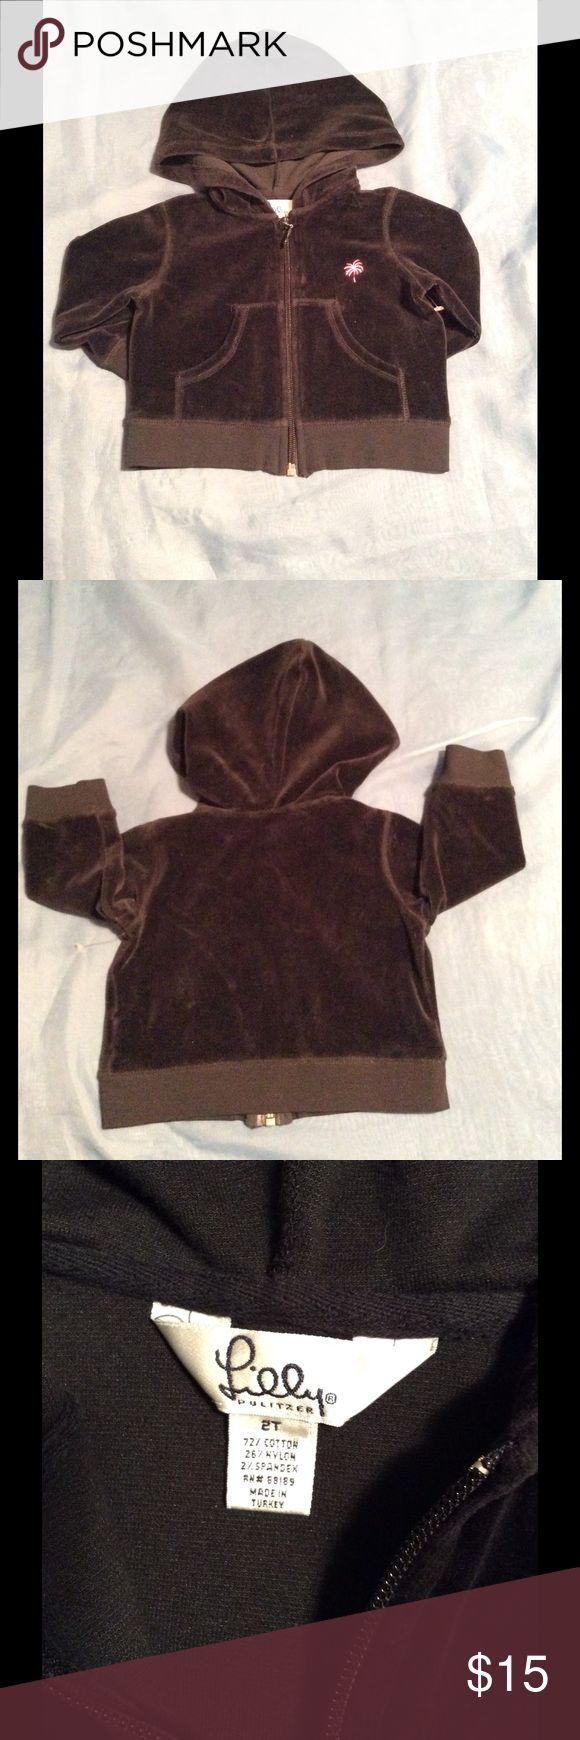 Lilly Pulitzer Velour Jacket Cute. Feels Great. Like New. Lilly Pulitzer Jackets & Coats